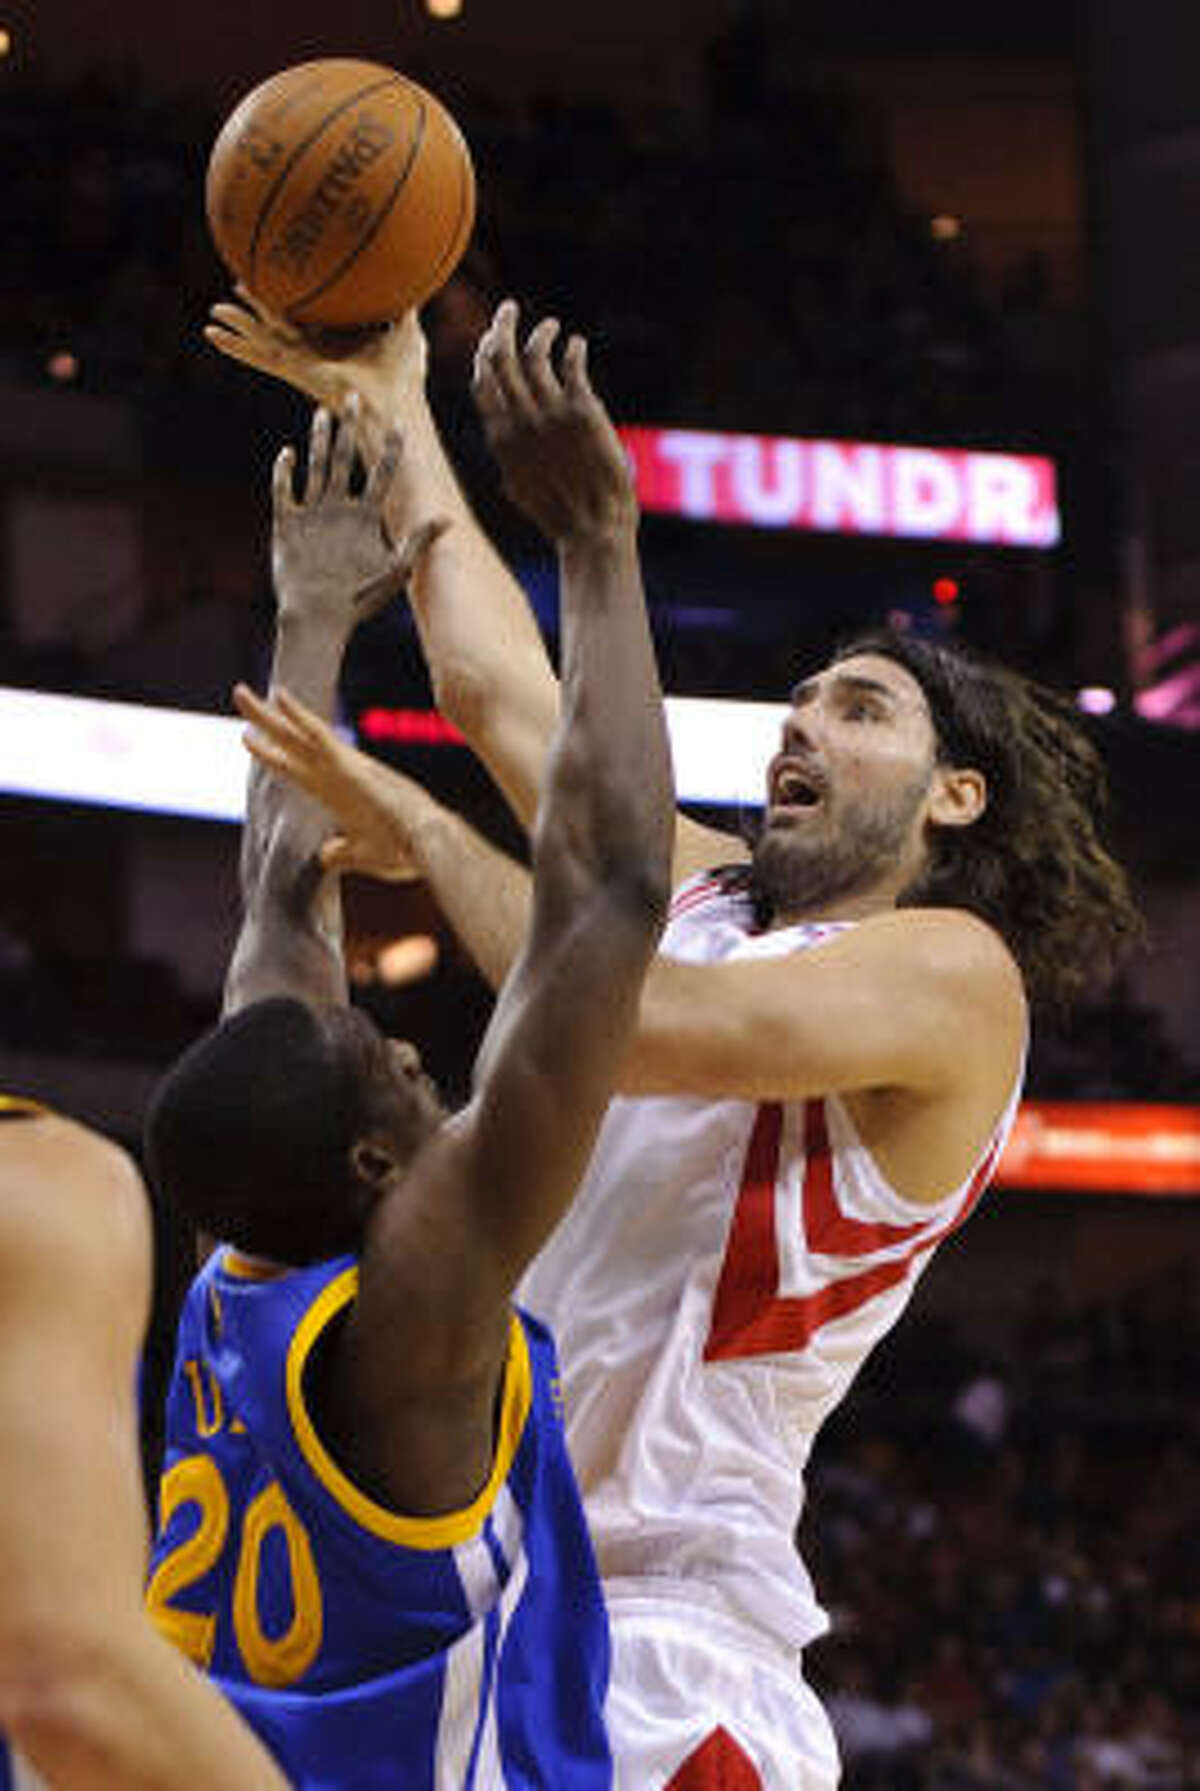 Rockets forward Luis Scola (4) drives against Warriors' Ekpe Udoh (20).